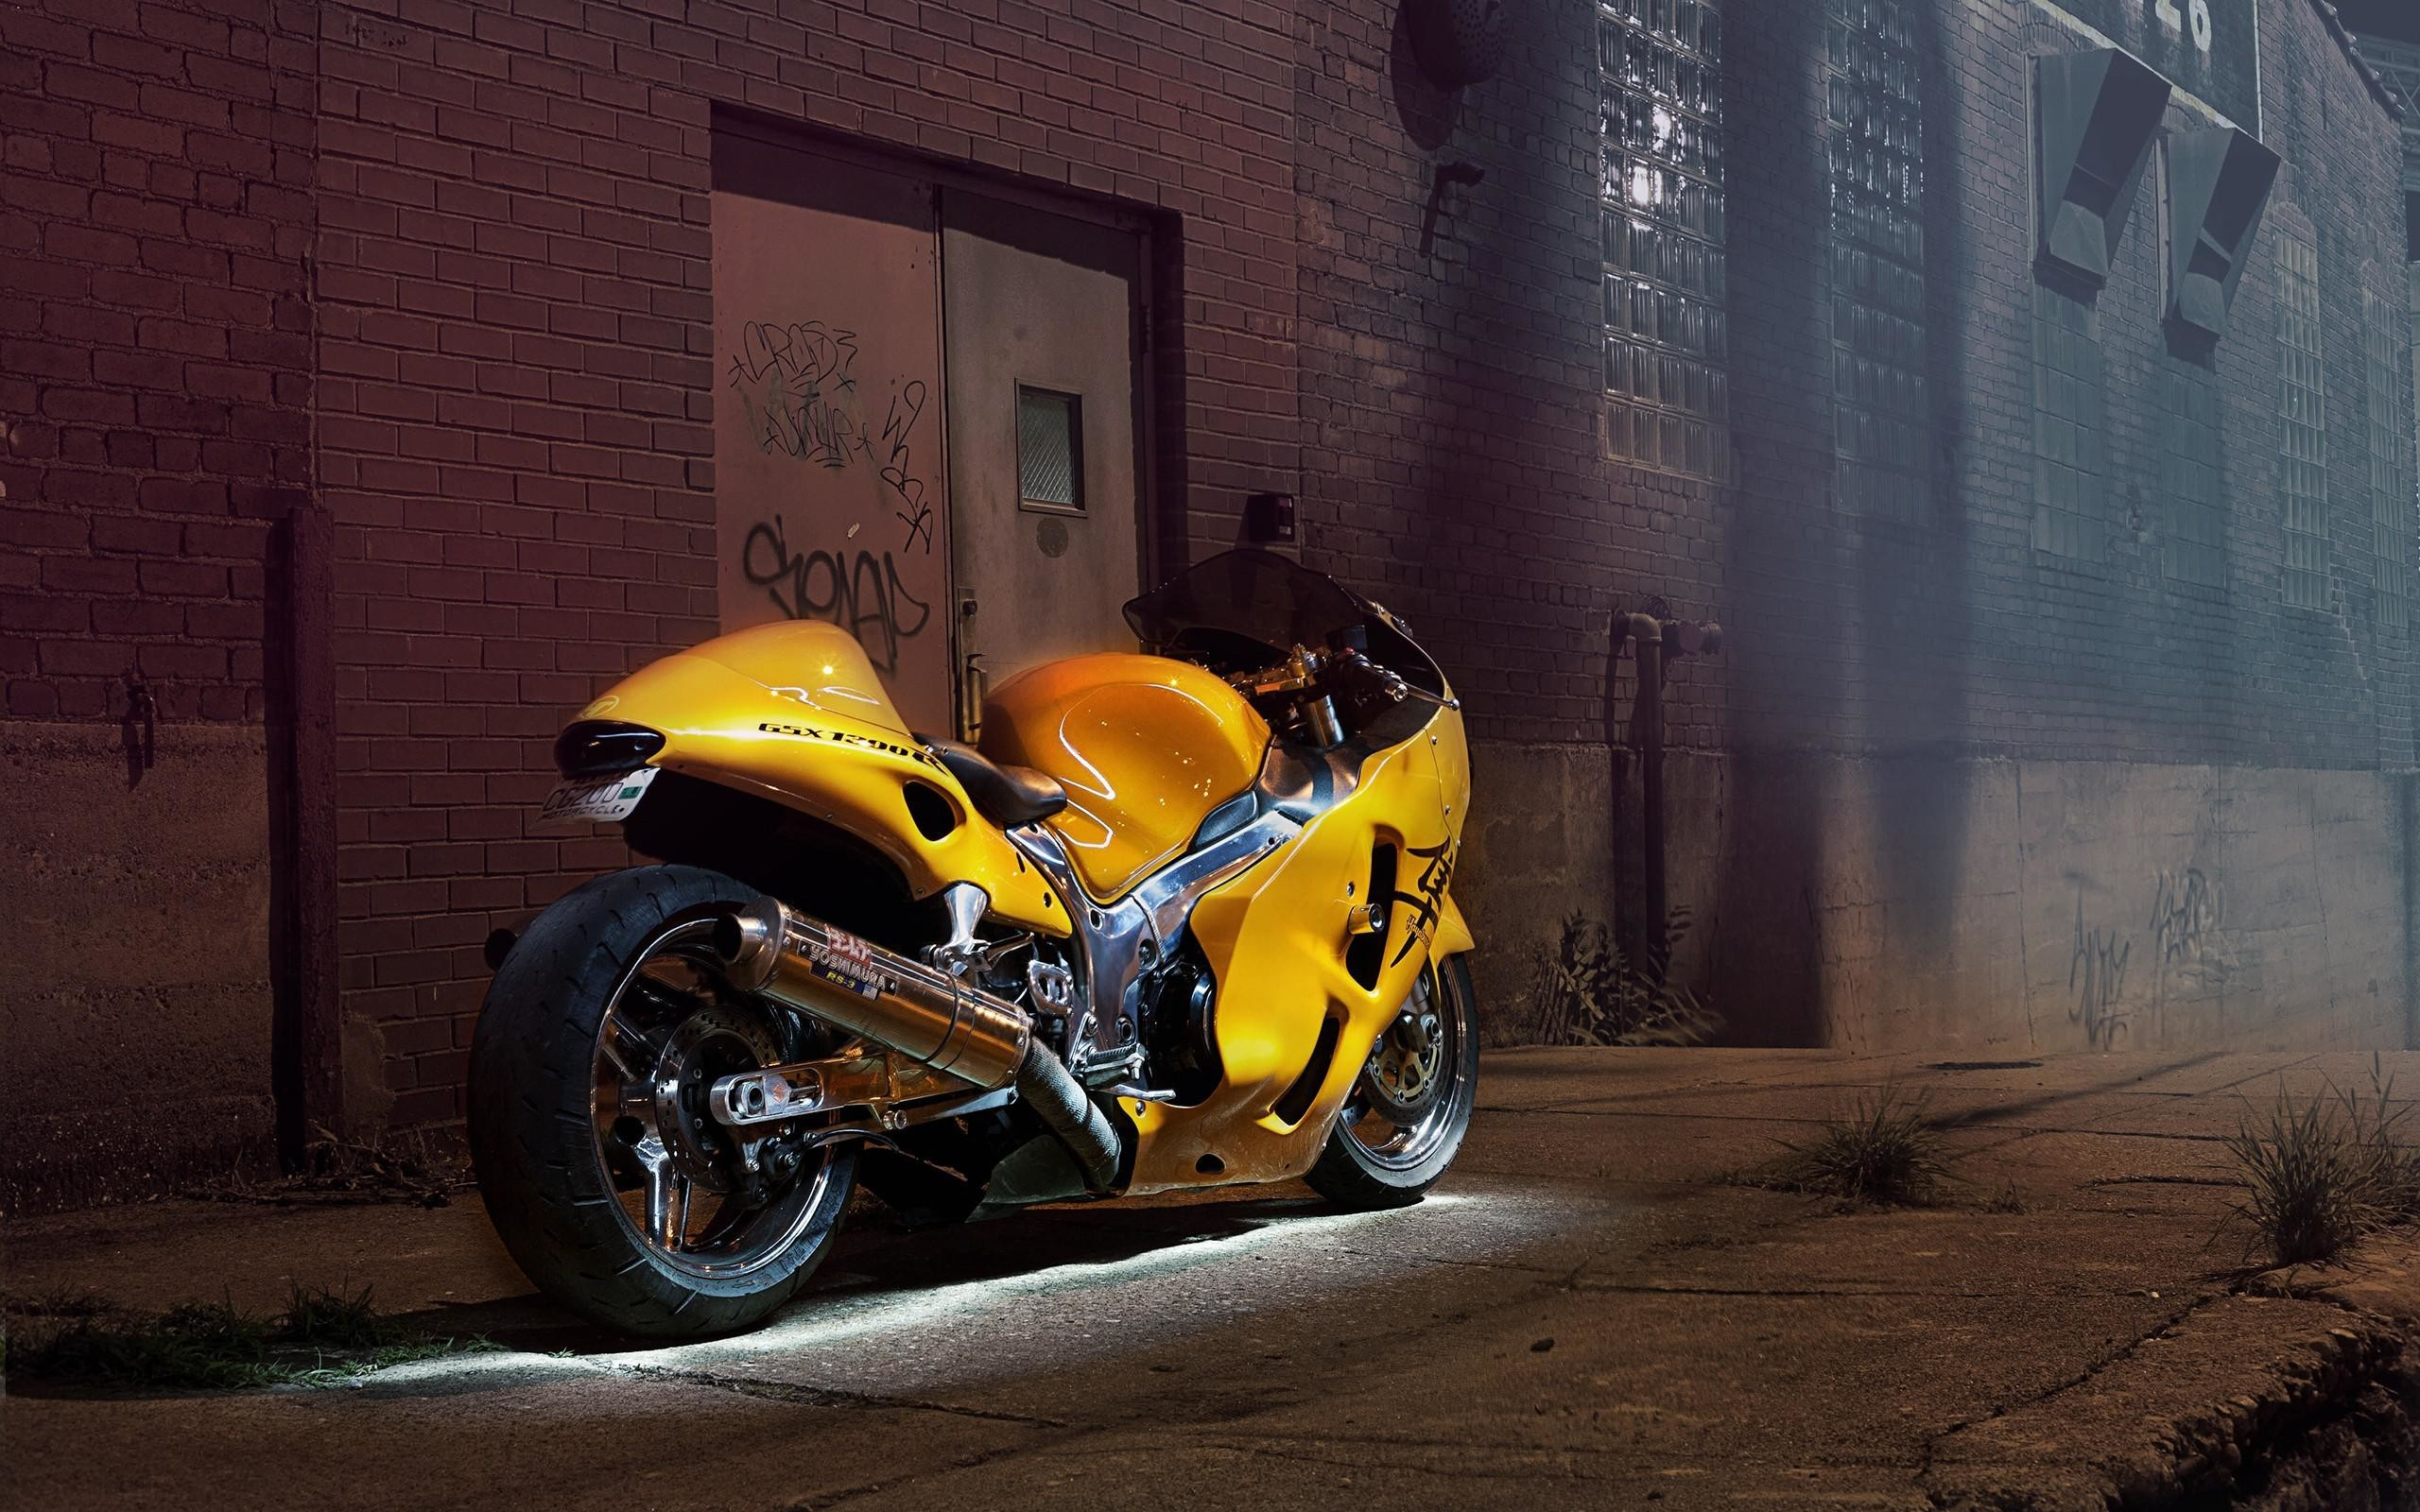 Suzuki Hayabusa Sports Bike Wallpaper HD Free Download